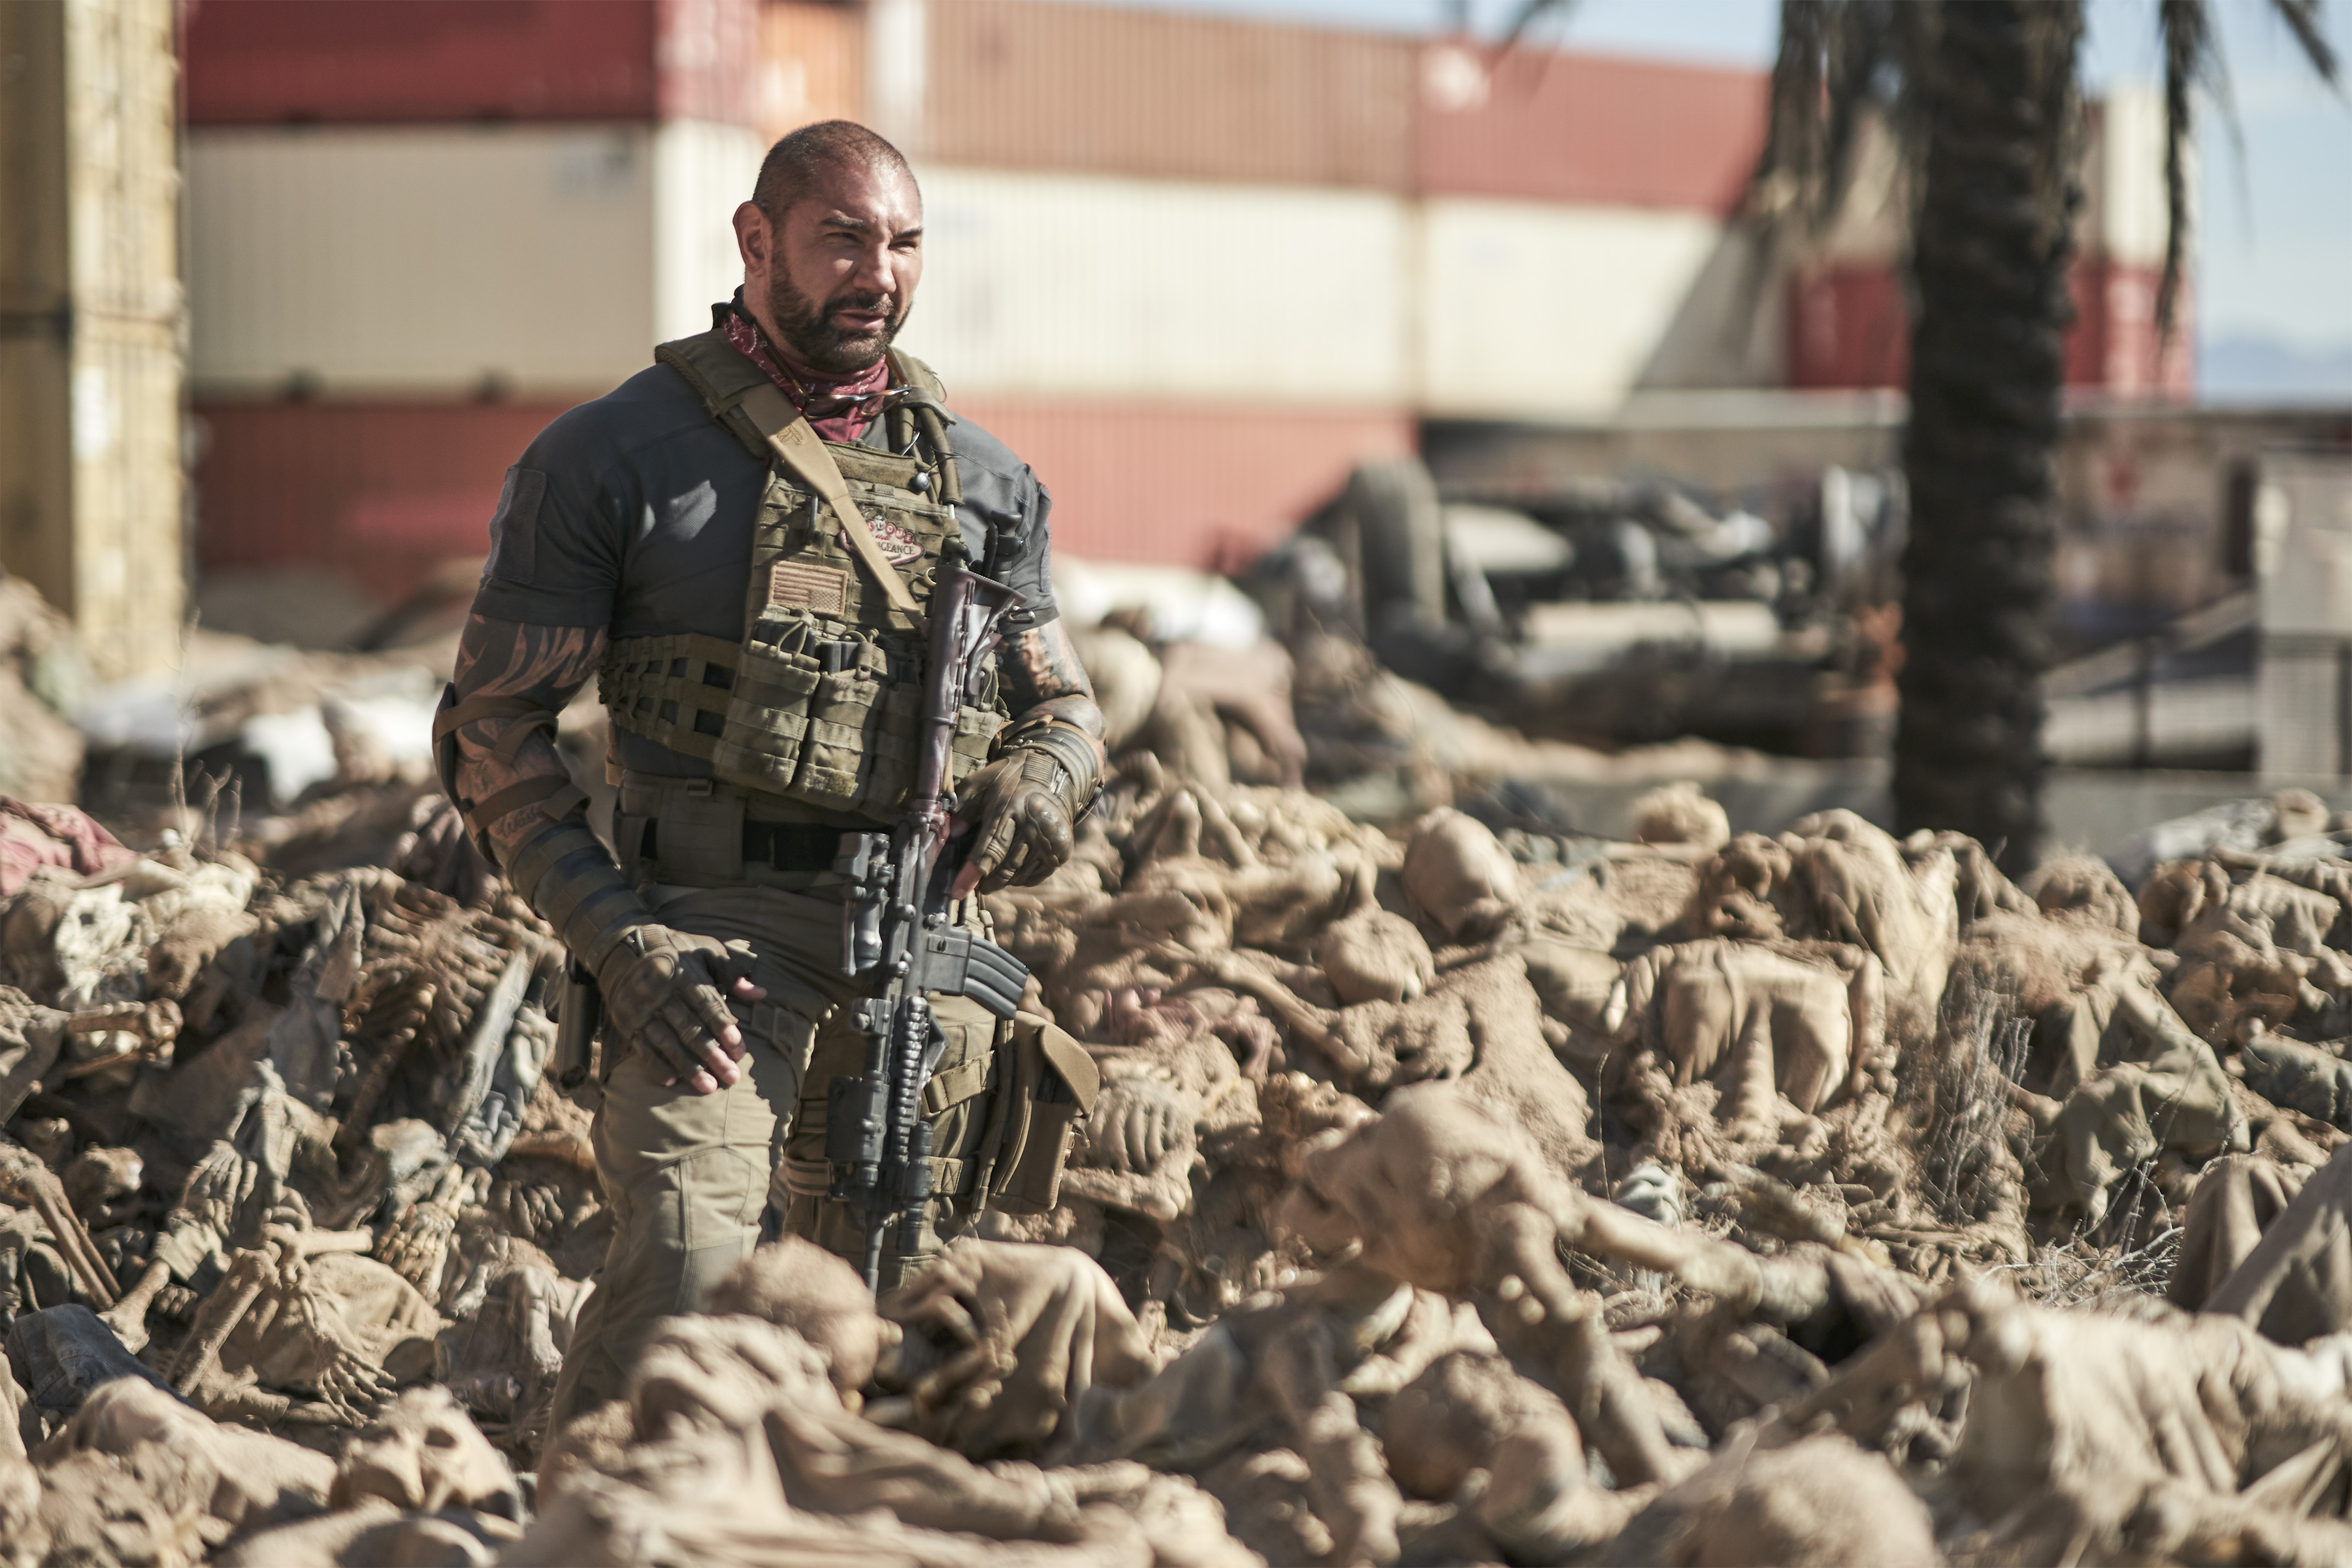 Film Review of Army of the Dead starring Dave Bautista as Scott Ward